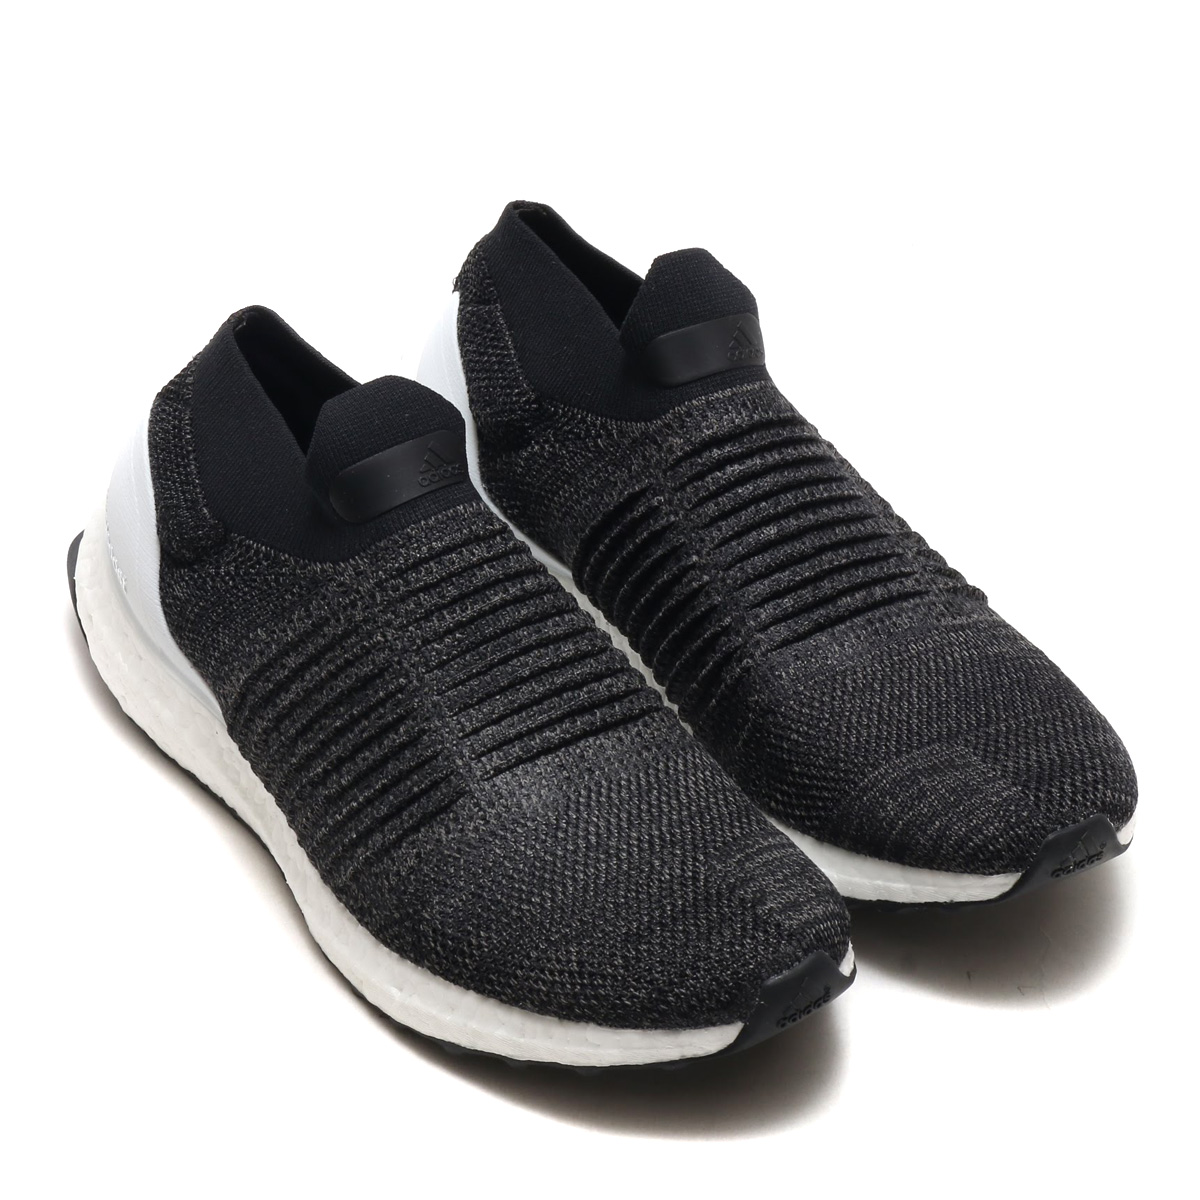 1dd4d7dfc74 adidas UltraBOOST LACELESS (Adidas ultra boost race reply) (core black    core black   solar orange) 18SS-I